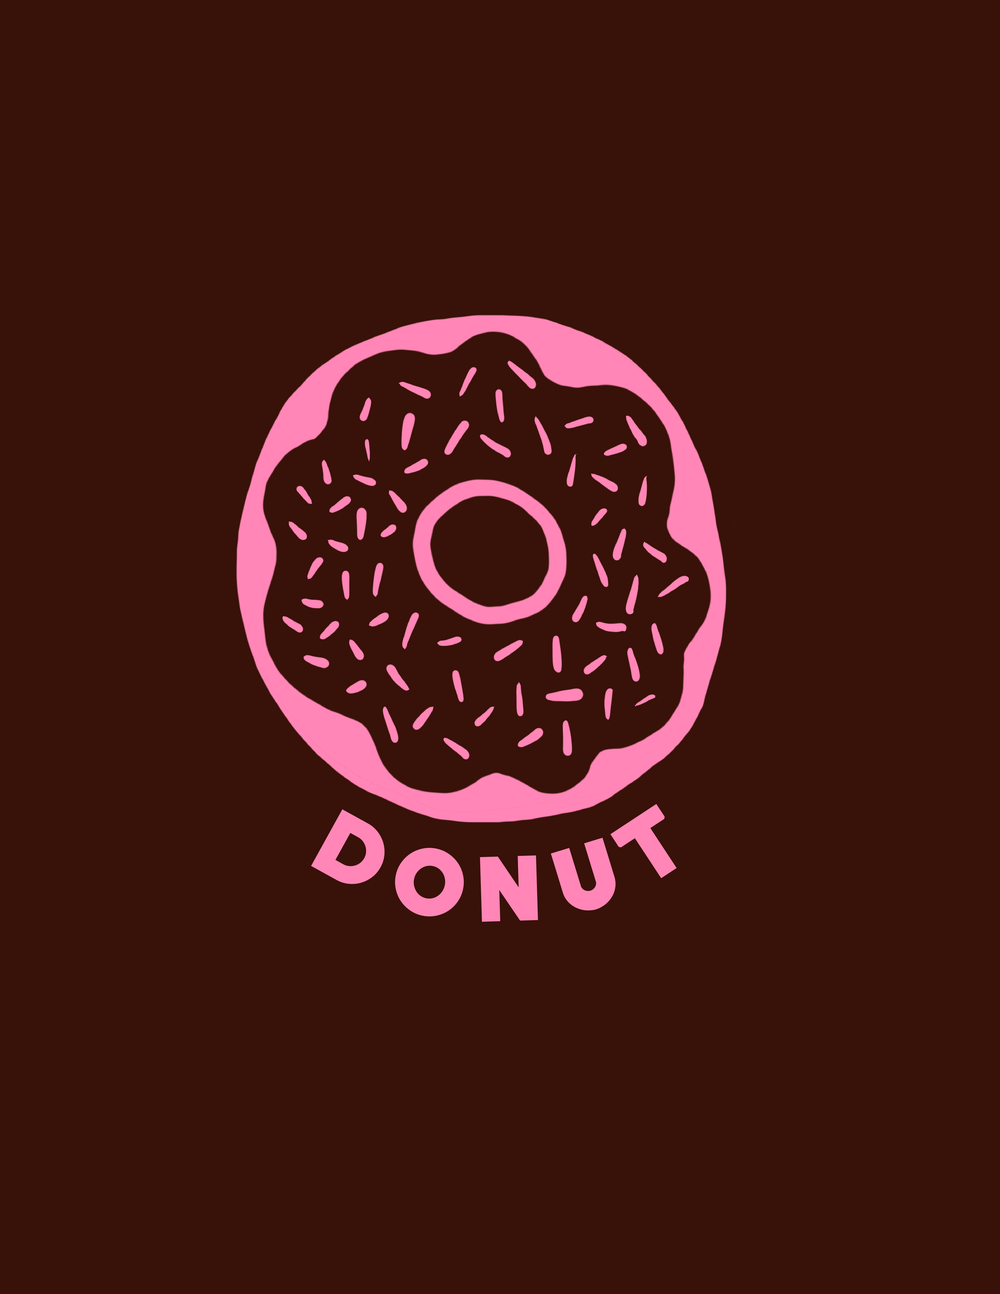 DONUT - Digital Illustration